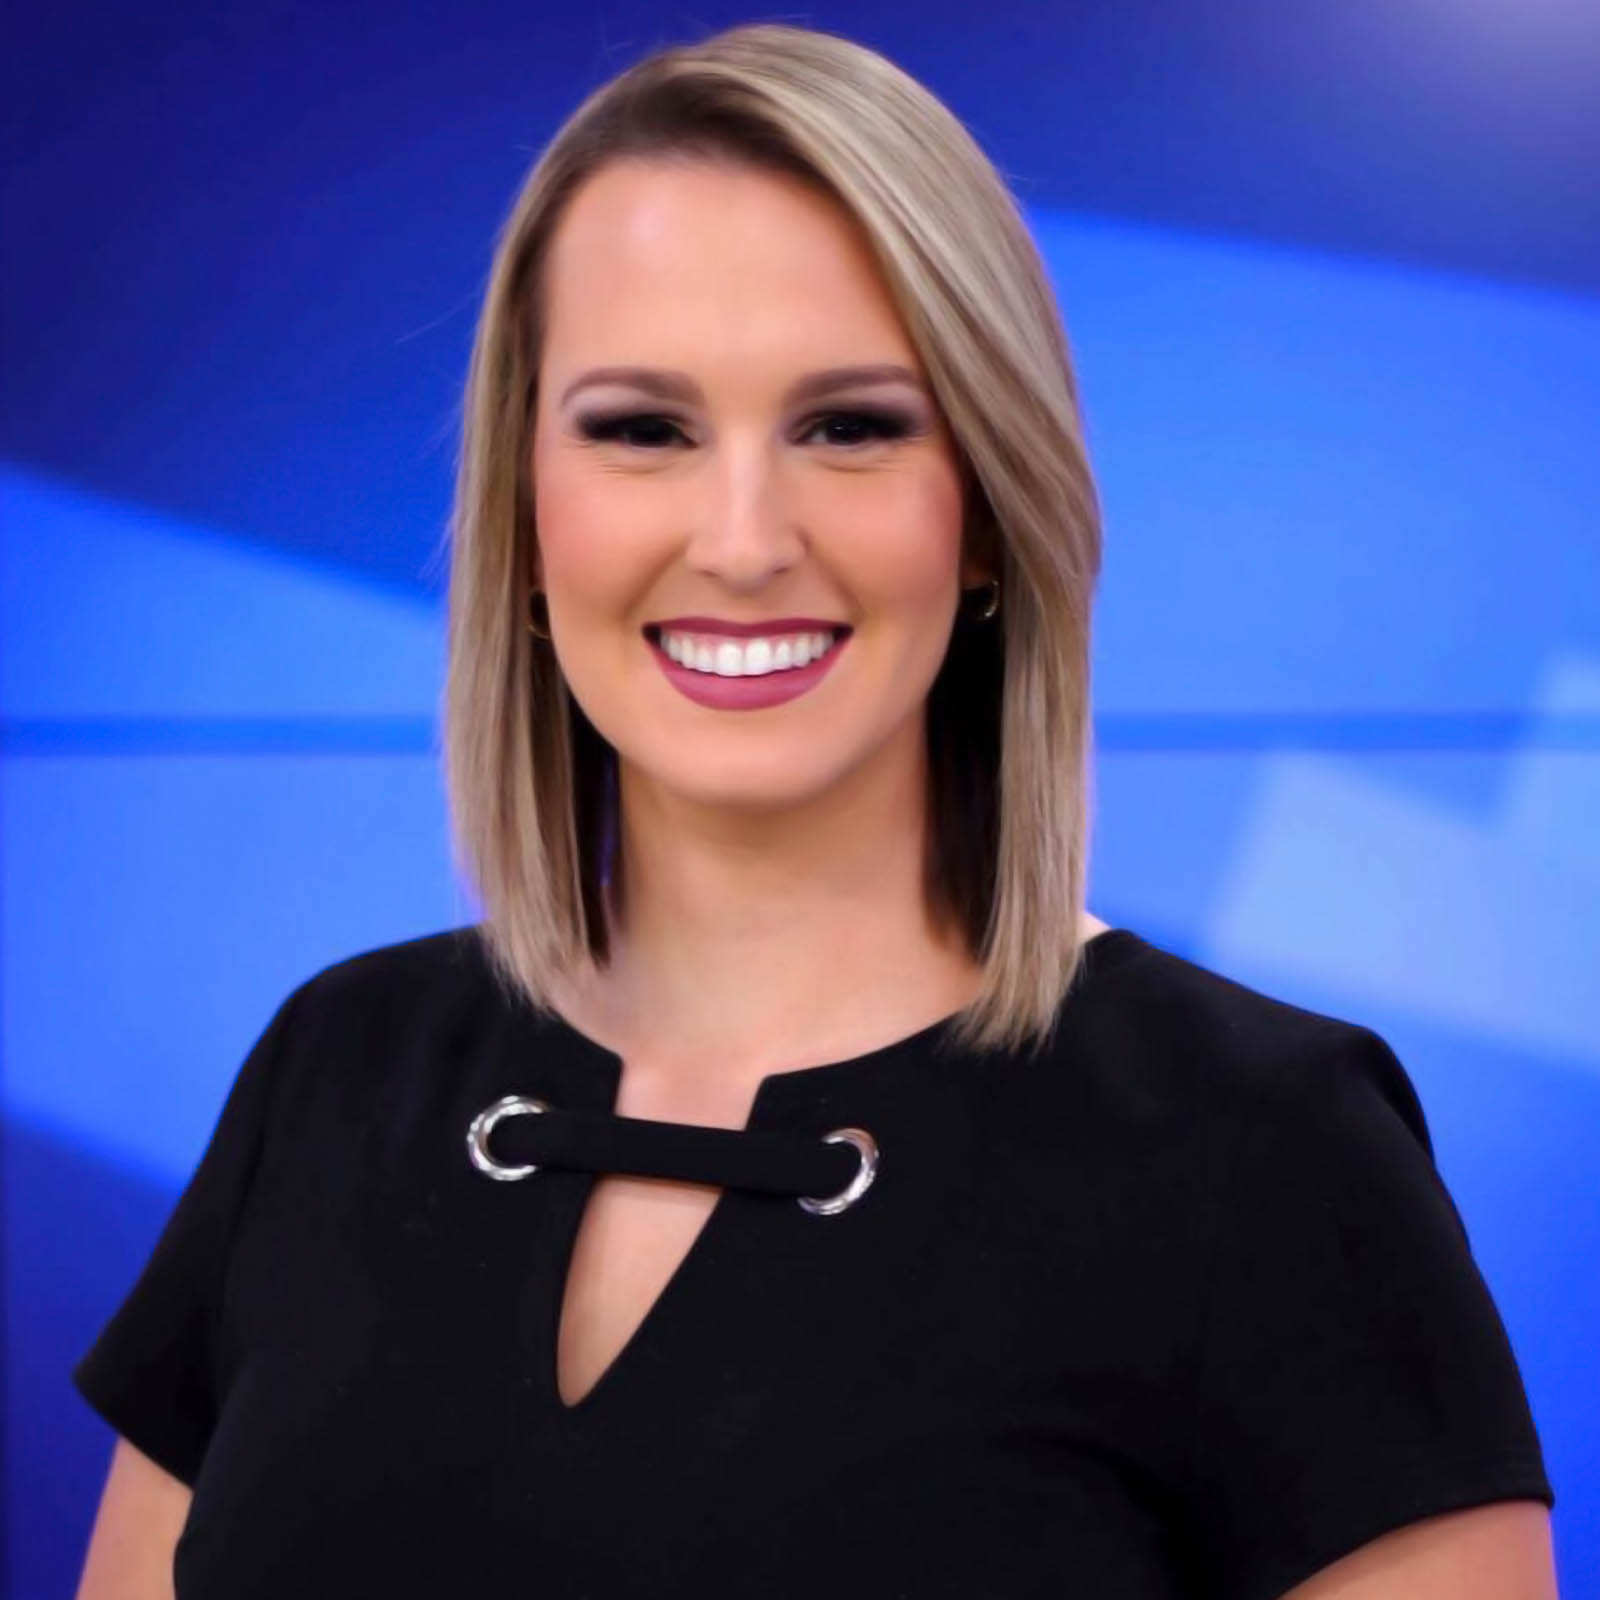 Mallory Anderson services for WILX News